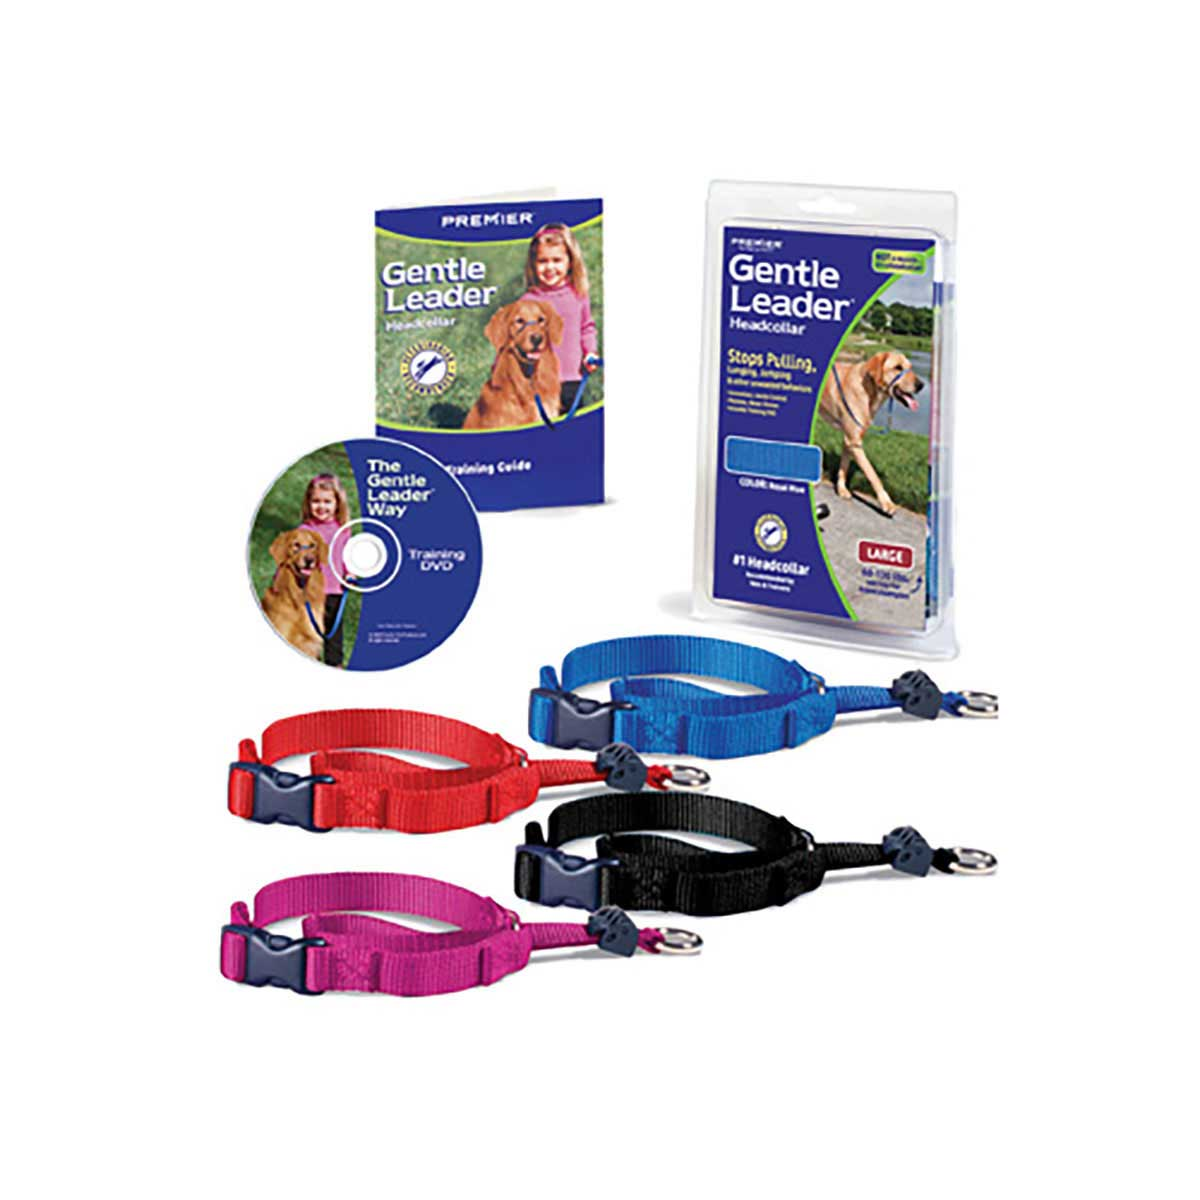 Gentle Leader Quick Release Head Collar Petite less than 5 lbs - Assorted Colors